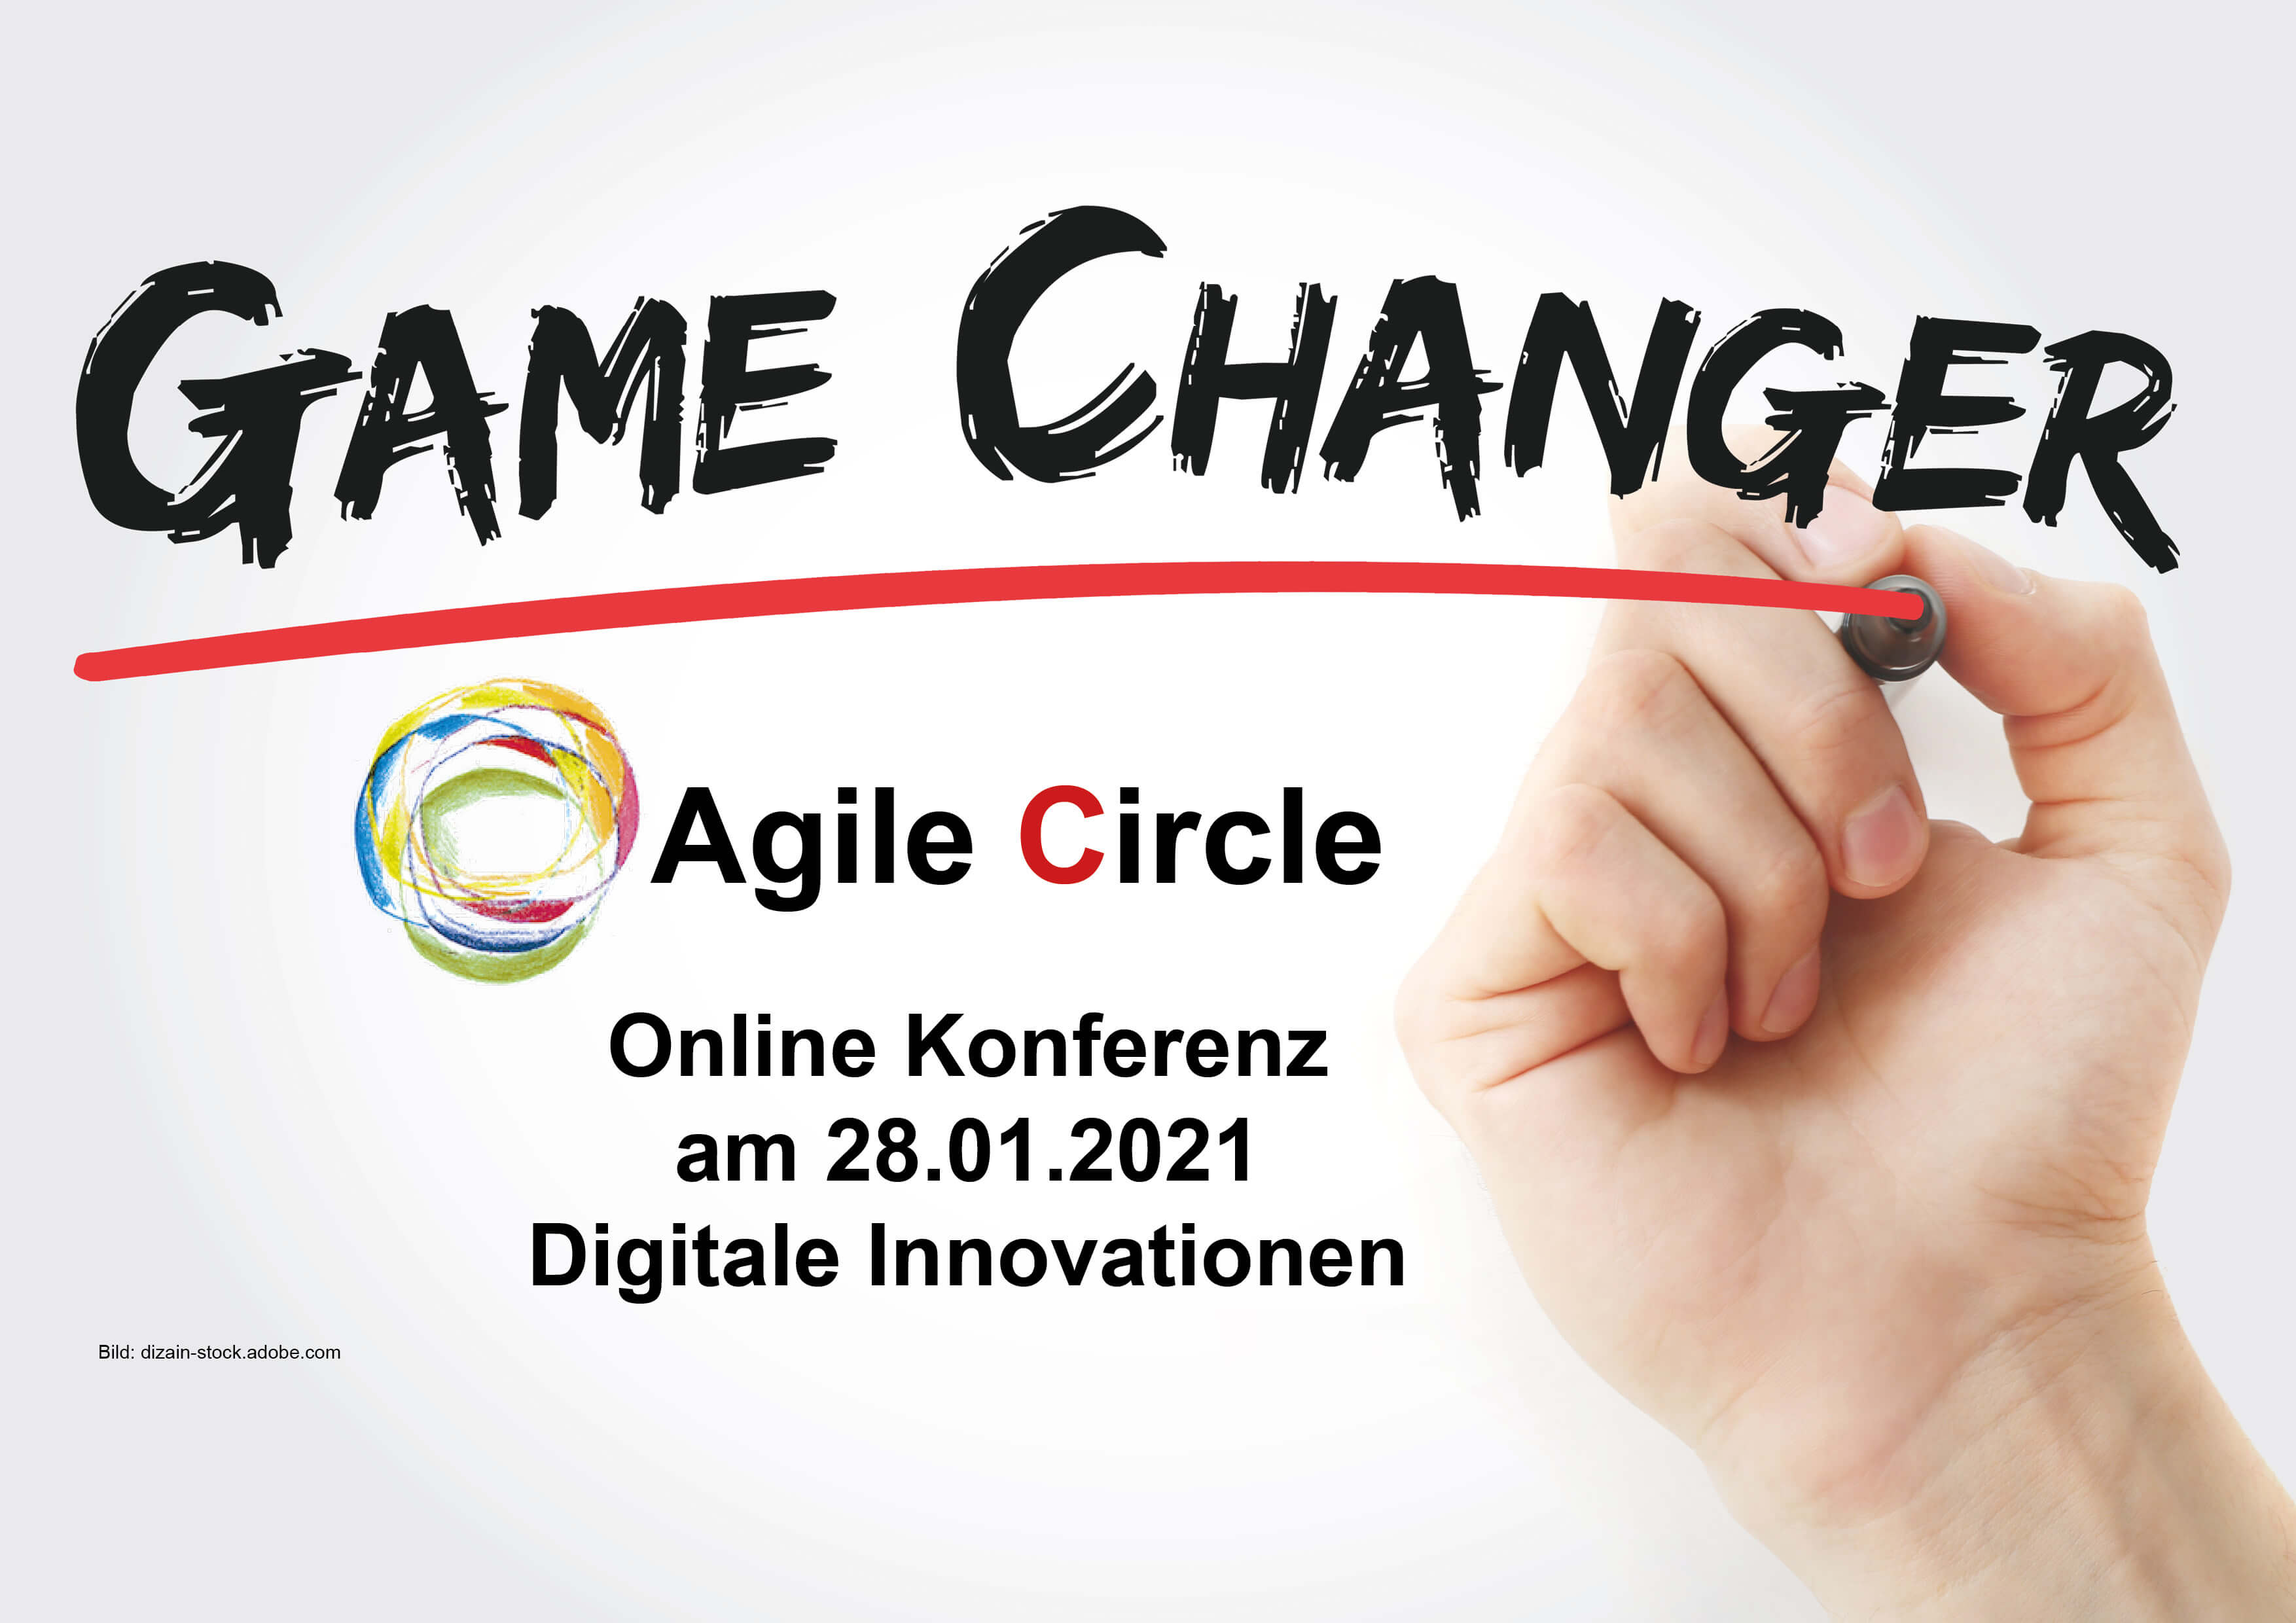 Agile Circle ONLINE - Game Changer